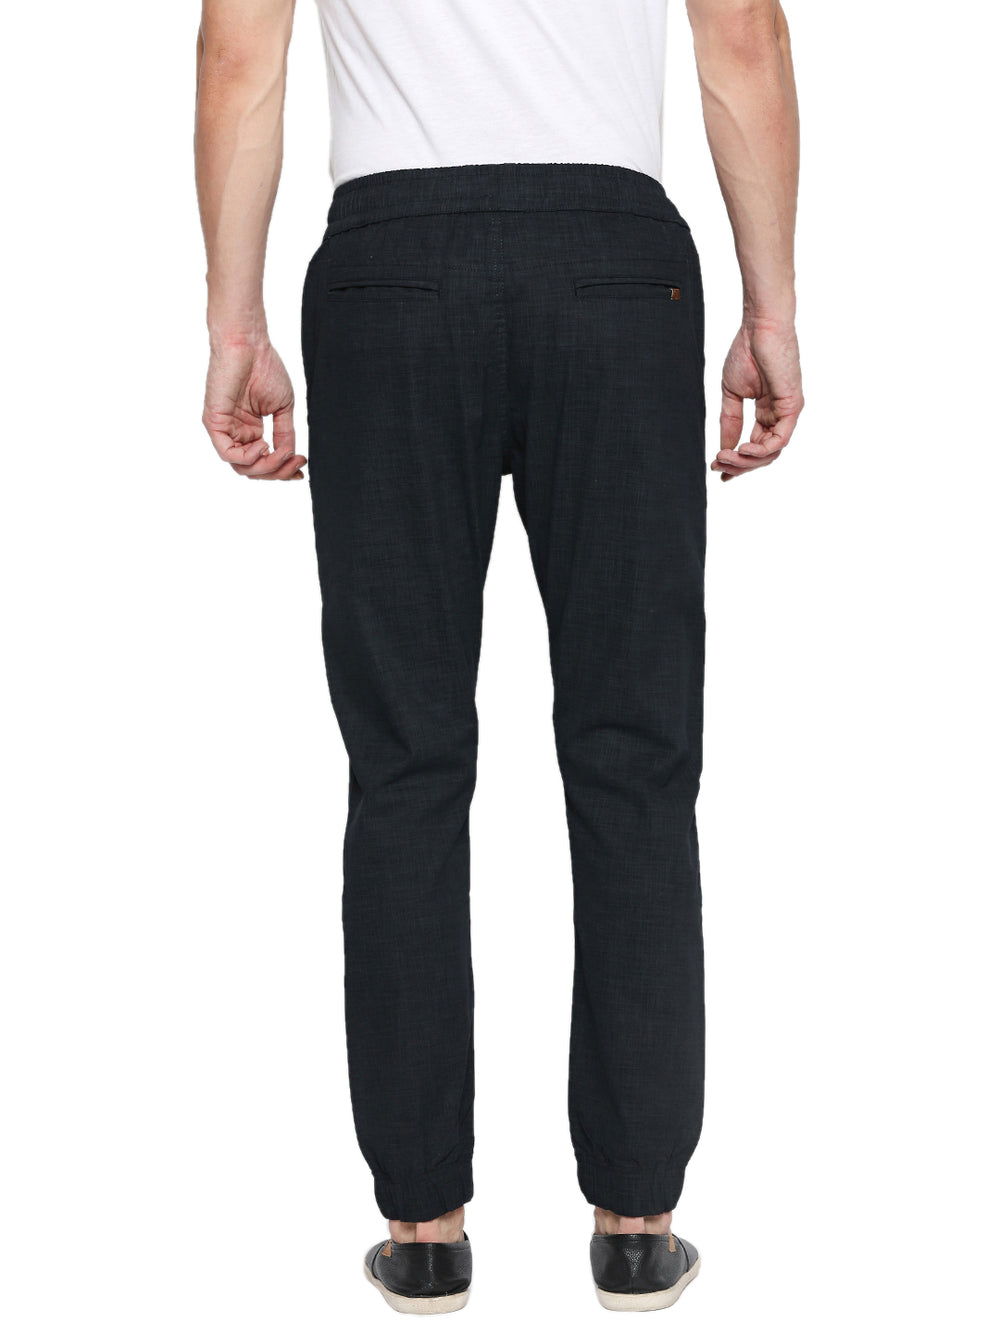 Disrupt Black Regular Fit Joggers For Men's